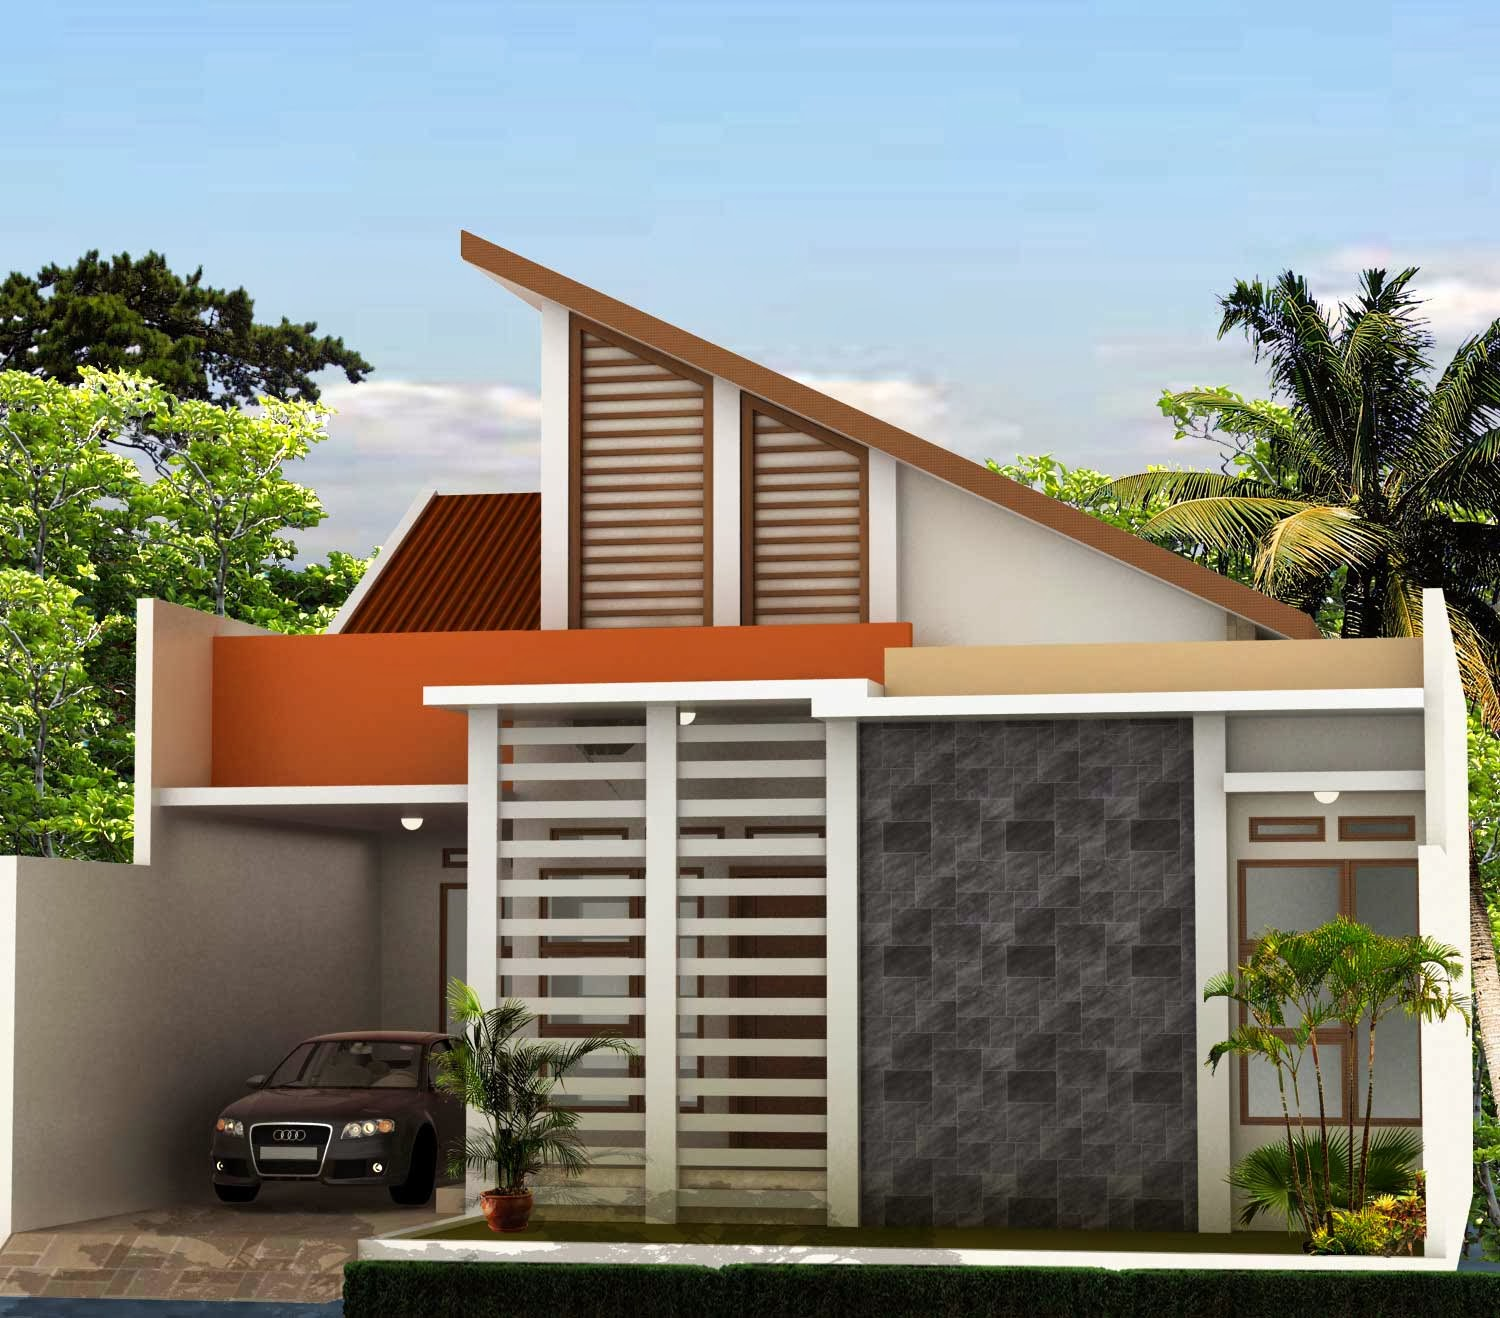 Modern Design Home Modern Minimalist House Design 1 and 2 Floors